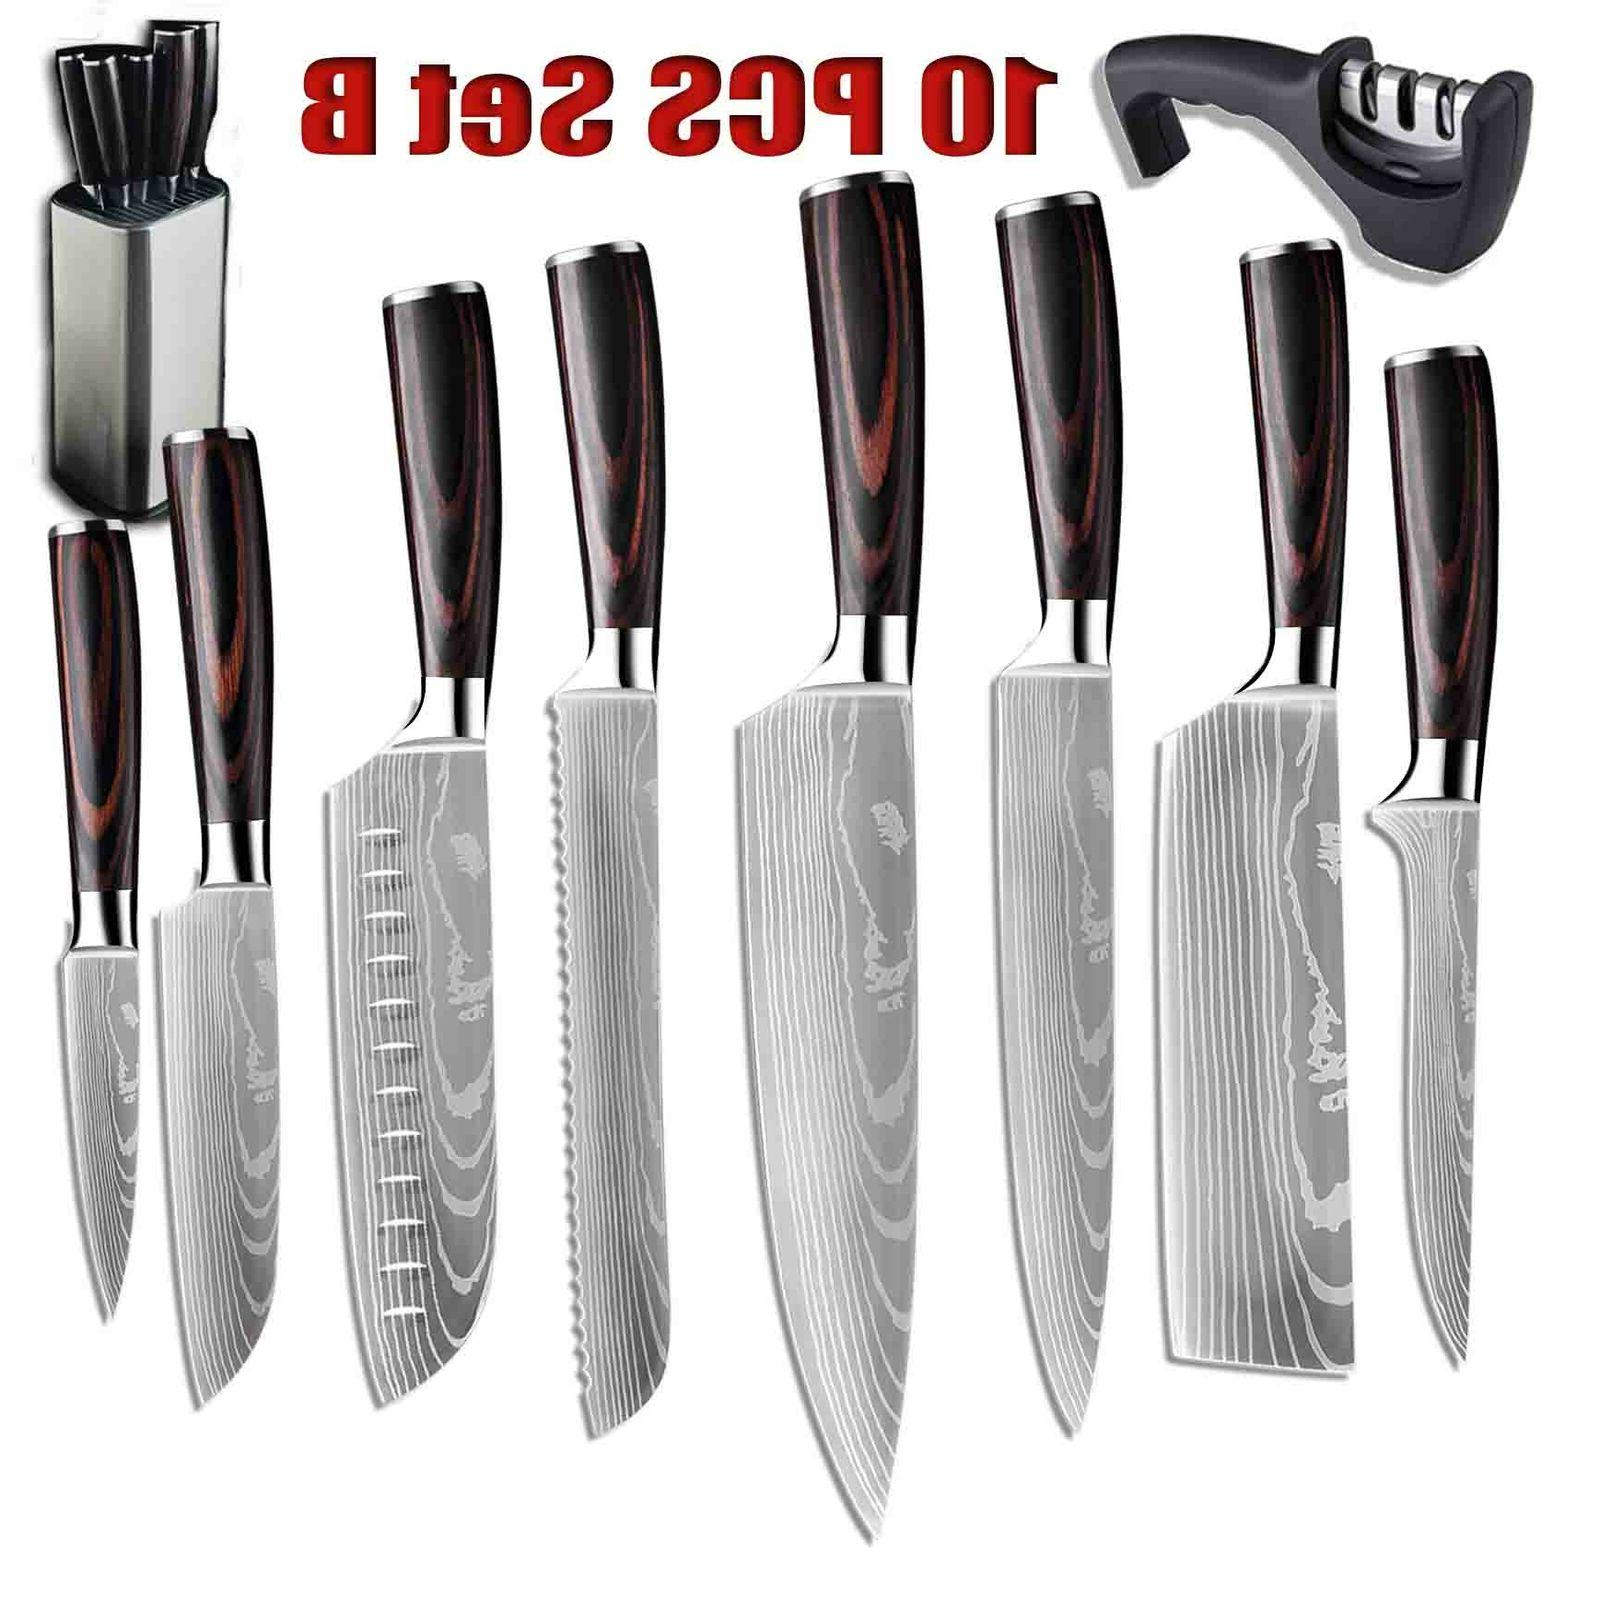 10 Piece Pro Kitchen Knives Variety Knife Cutter Accessories